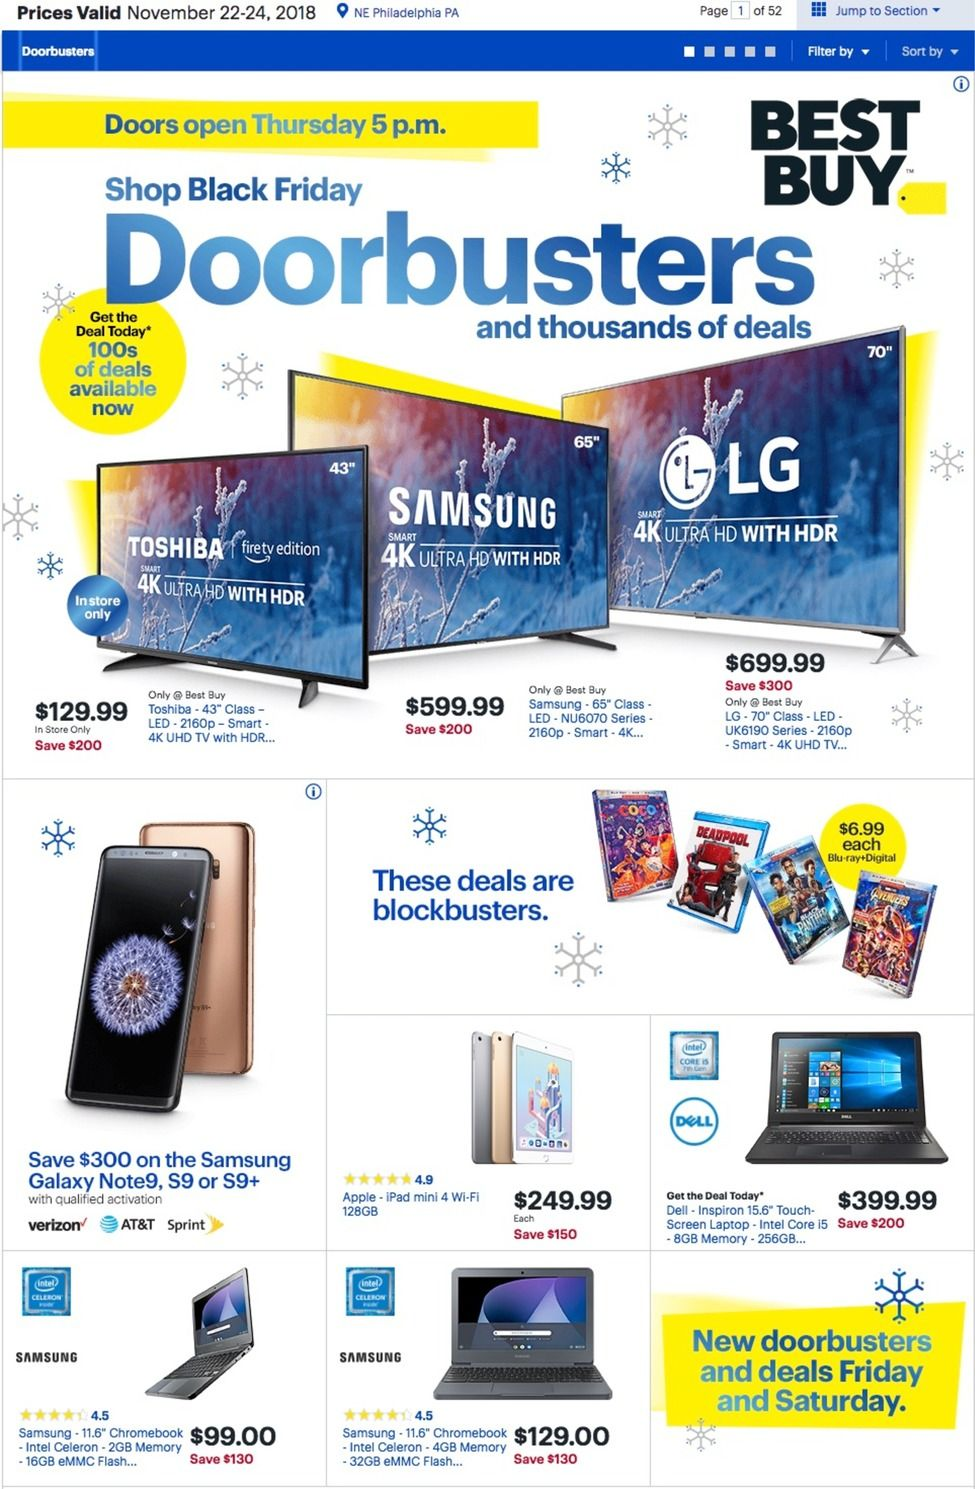 Babybear S Freebies Sweeps And More Best Buy 2108 Black Friday Ad Cool Things To Buy Amazon Black Friday Black Friday Ads